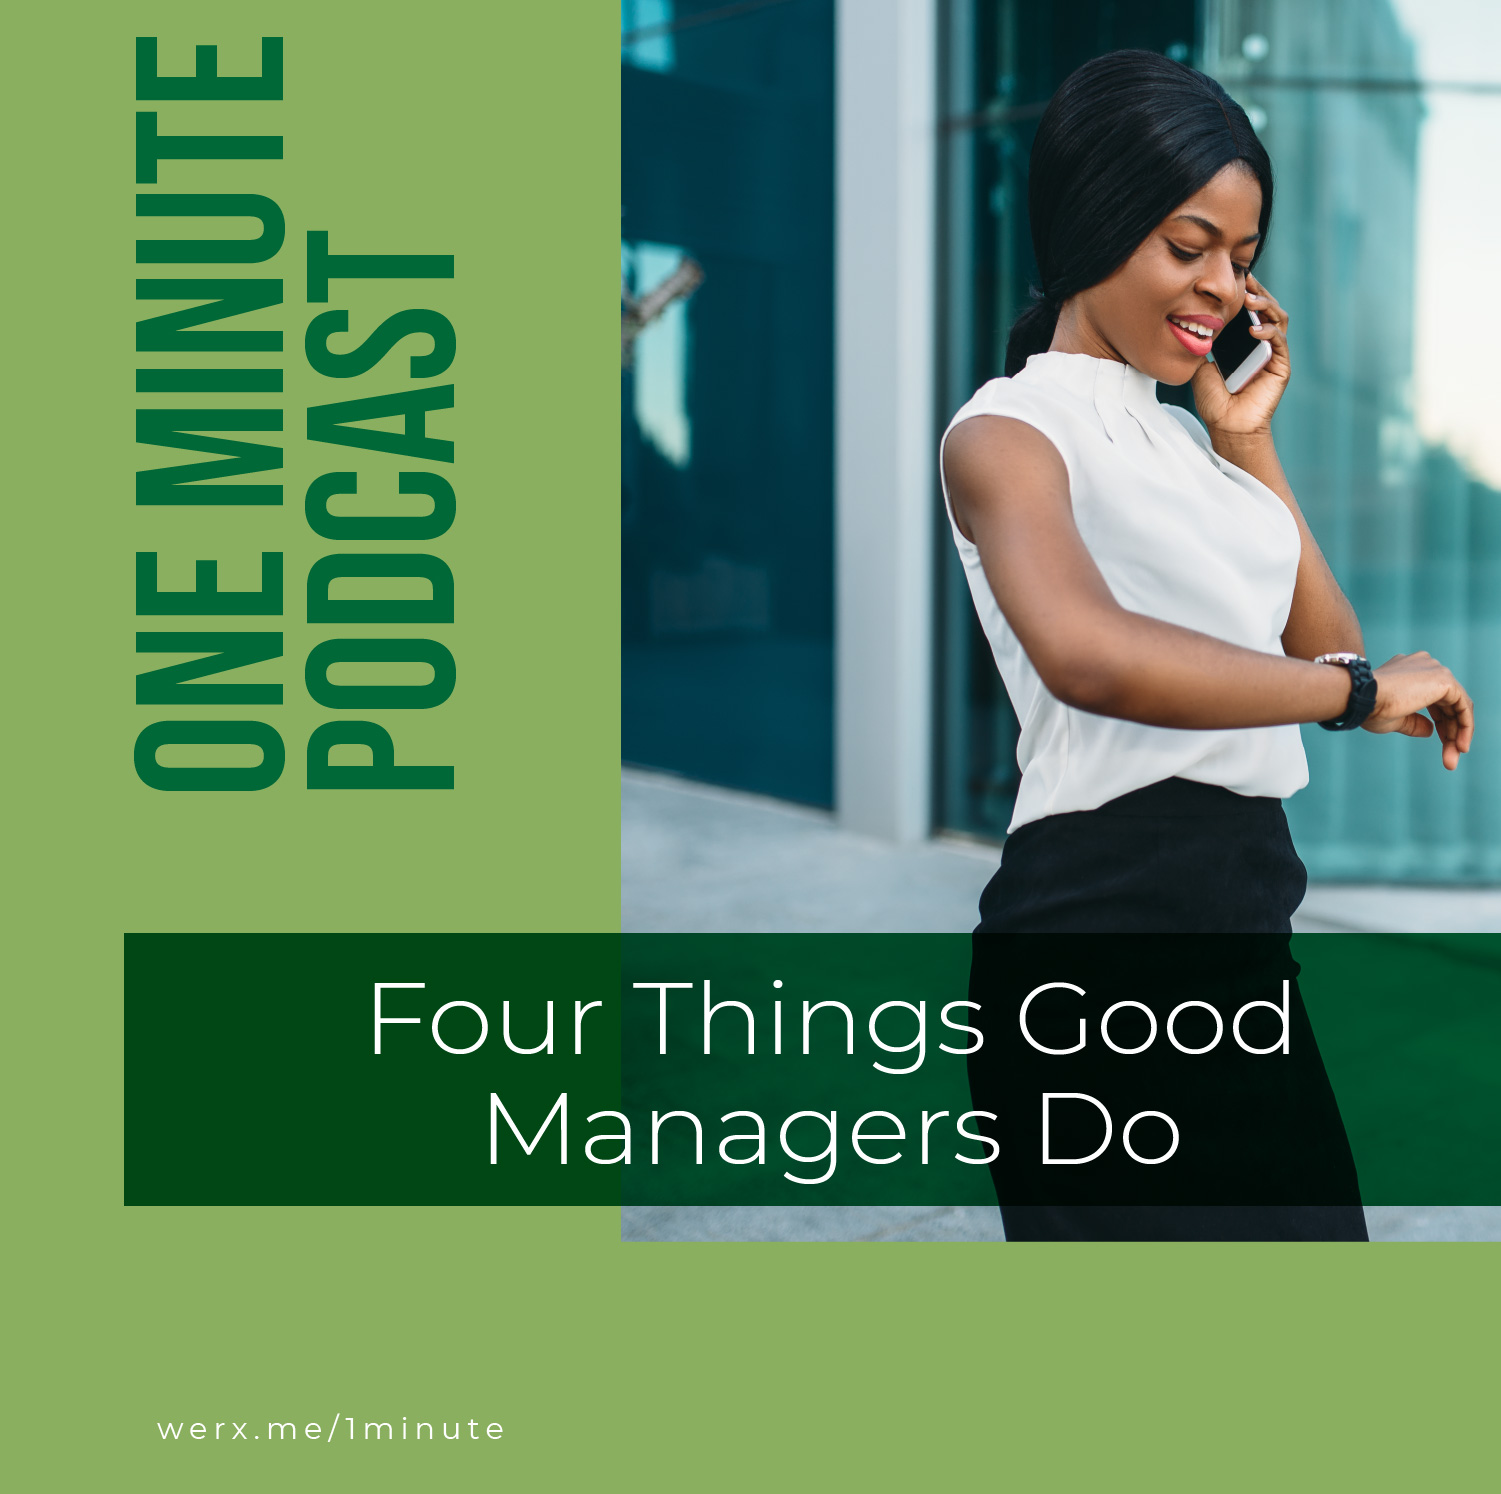 4-things-good-managers-one-minute-coversfull